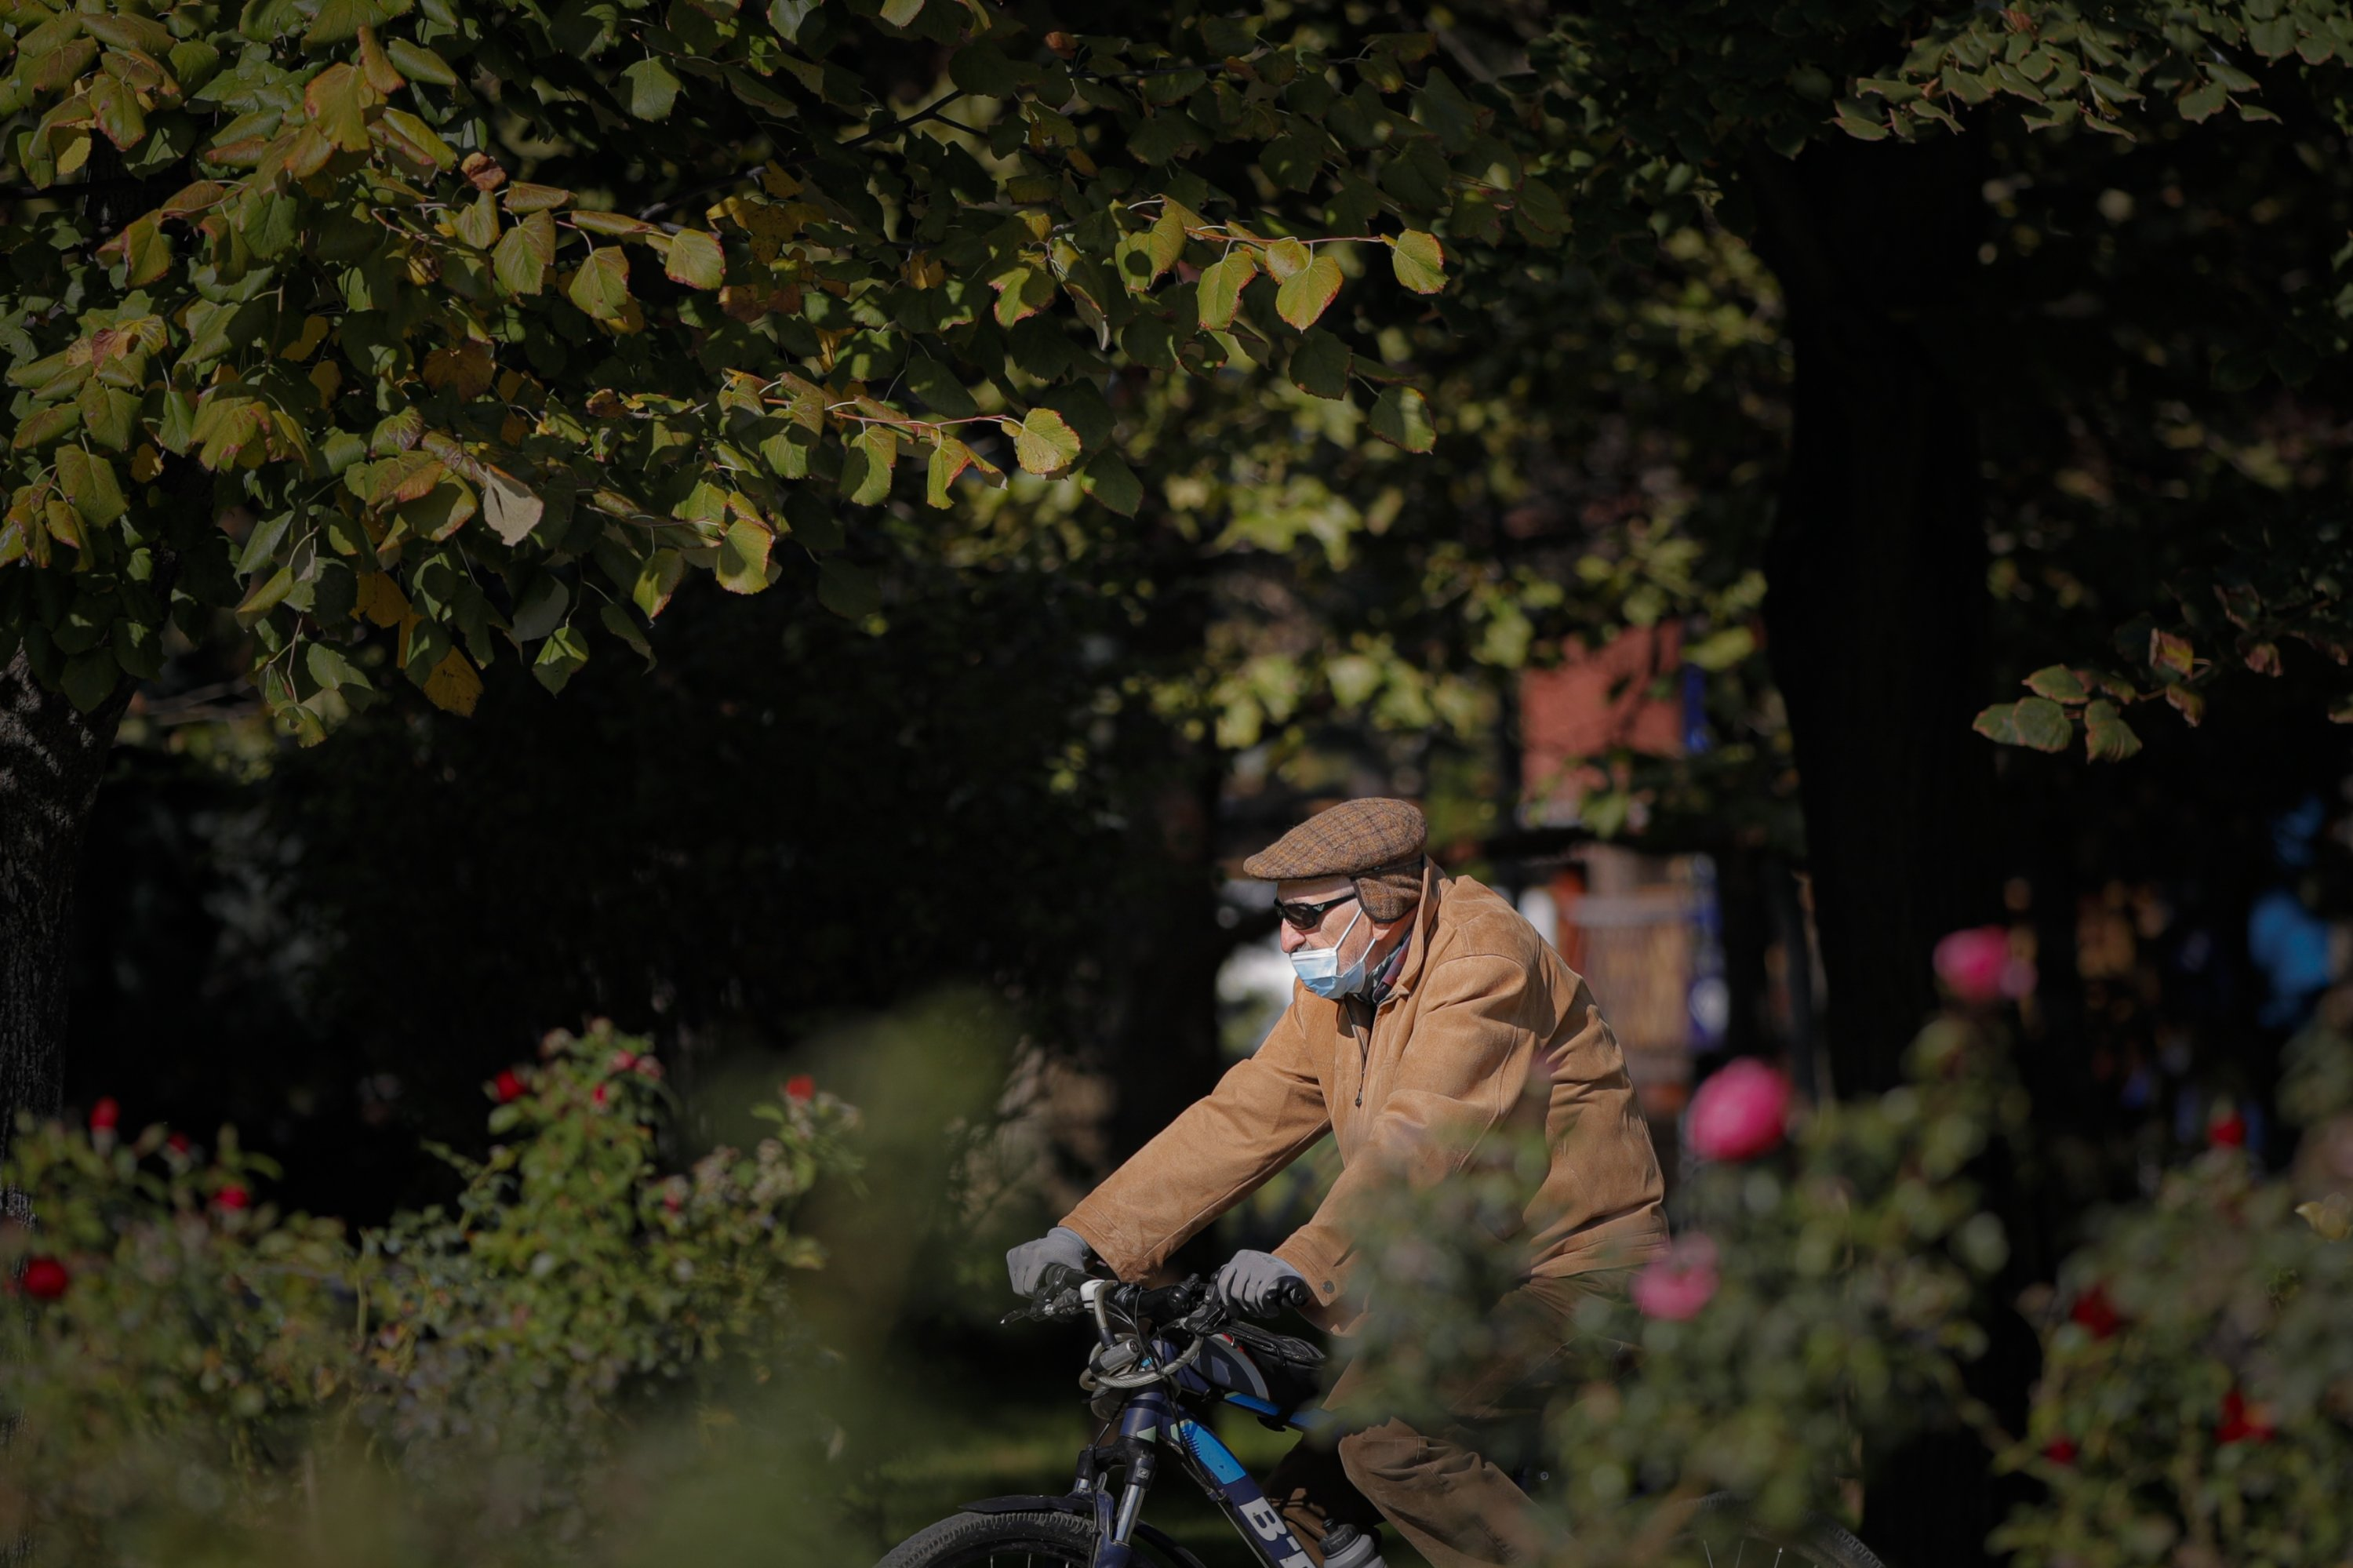 A man wearing a face mask for protection against COVID-19 infection rides a bicycle in Bucharest, Romania, Oct. 20, 2020. (AP Photo)